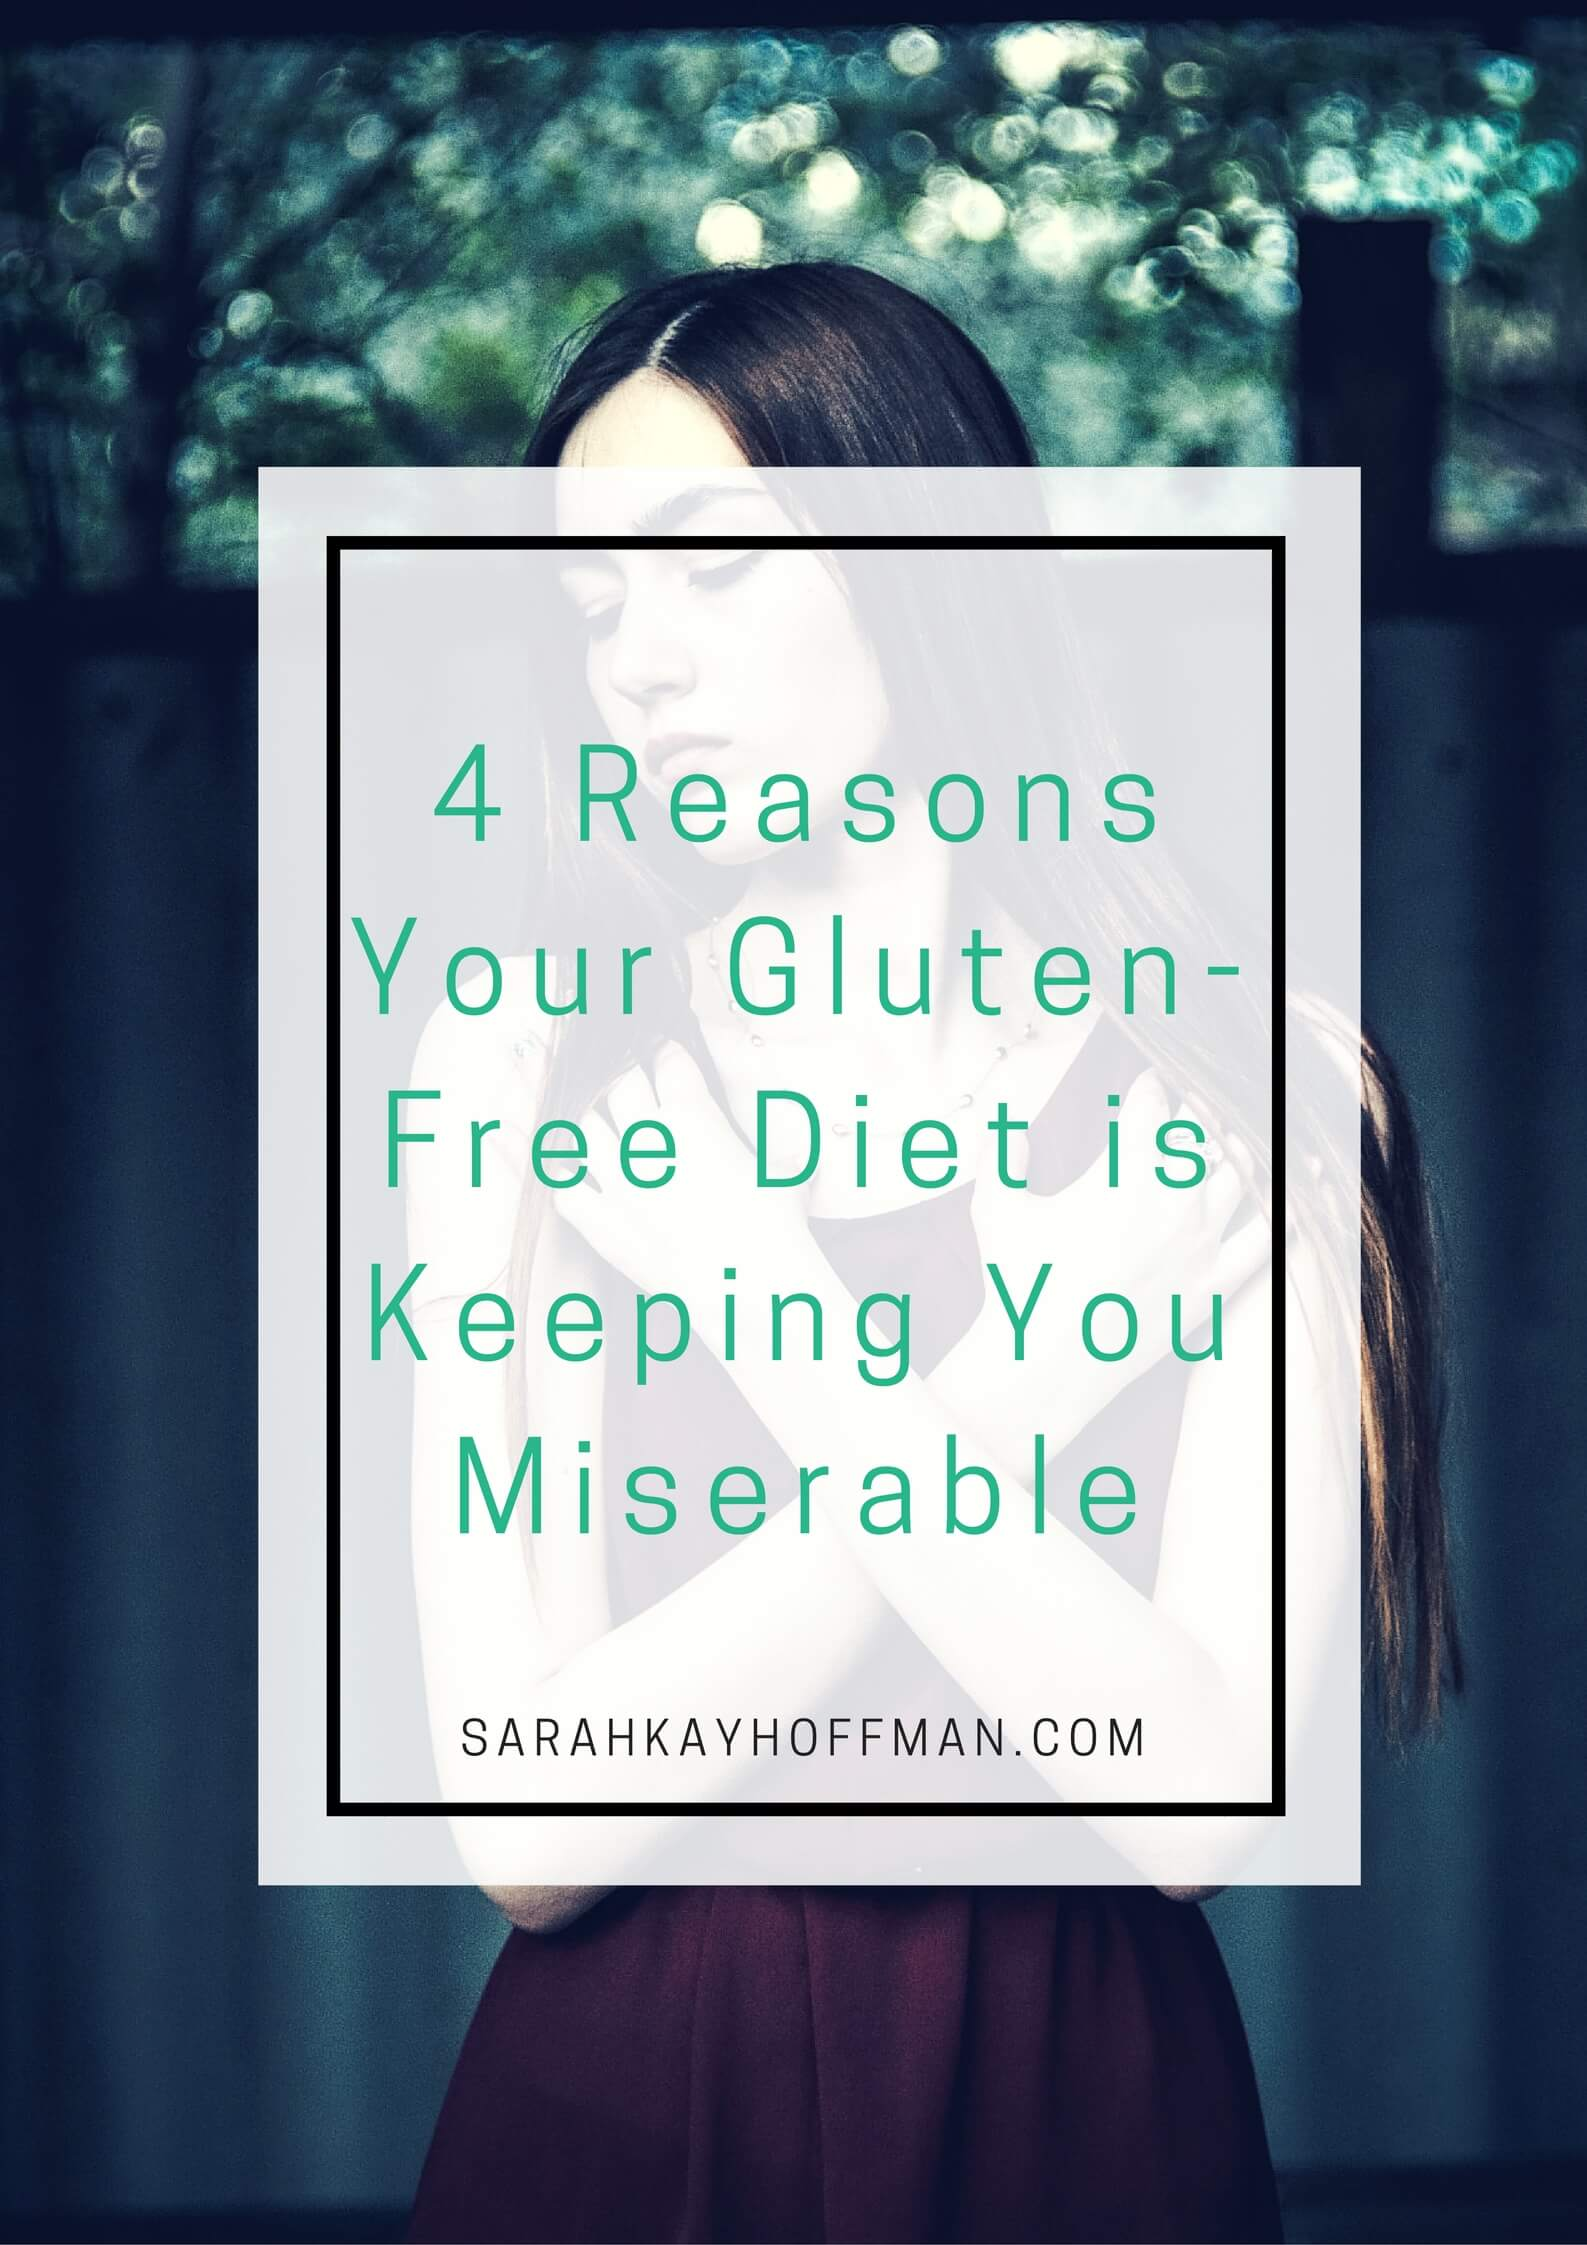 4 Reasons Your Gluten-Free Diet is Keeping You Miserable sarahkayhoffman.com #glutenfree #healthyliving #guthealth